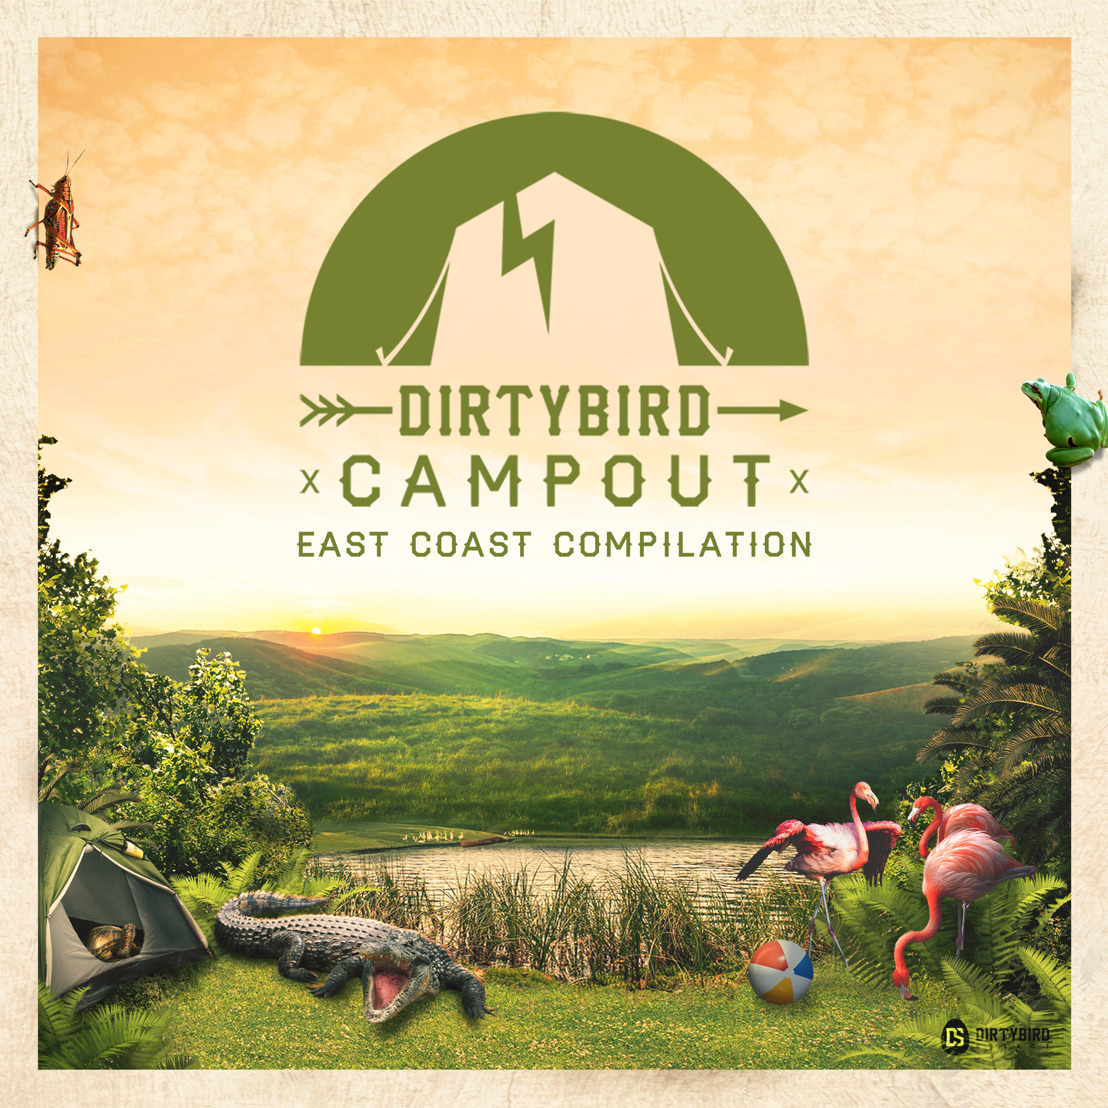 [LISTEN] Dirtybird Select Releases Campout East Compilation